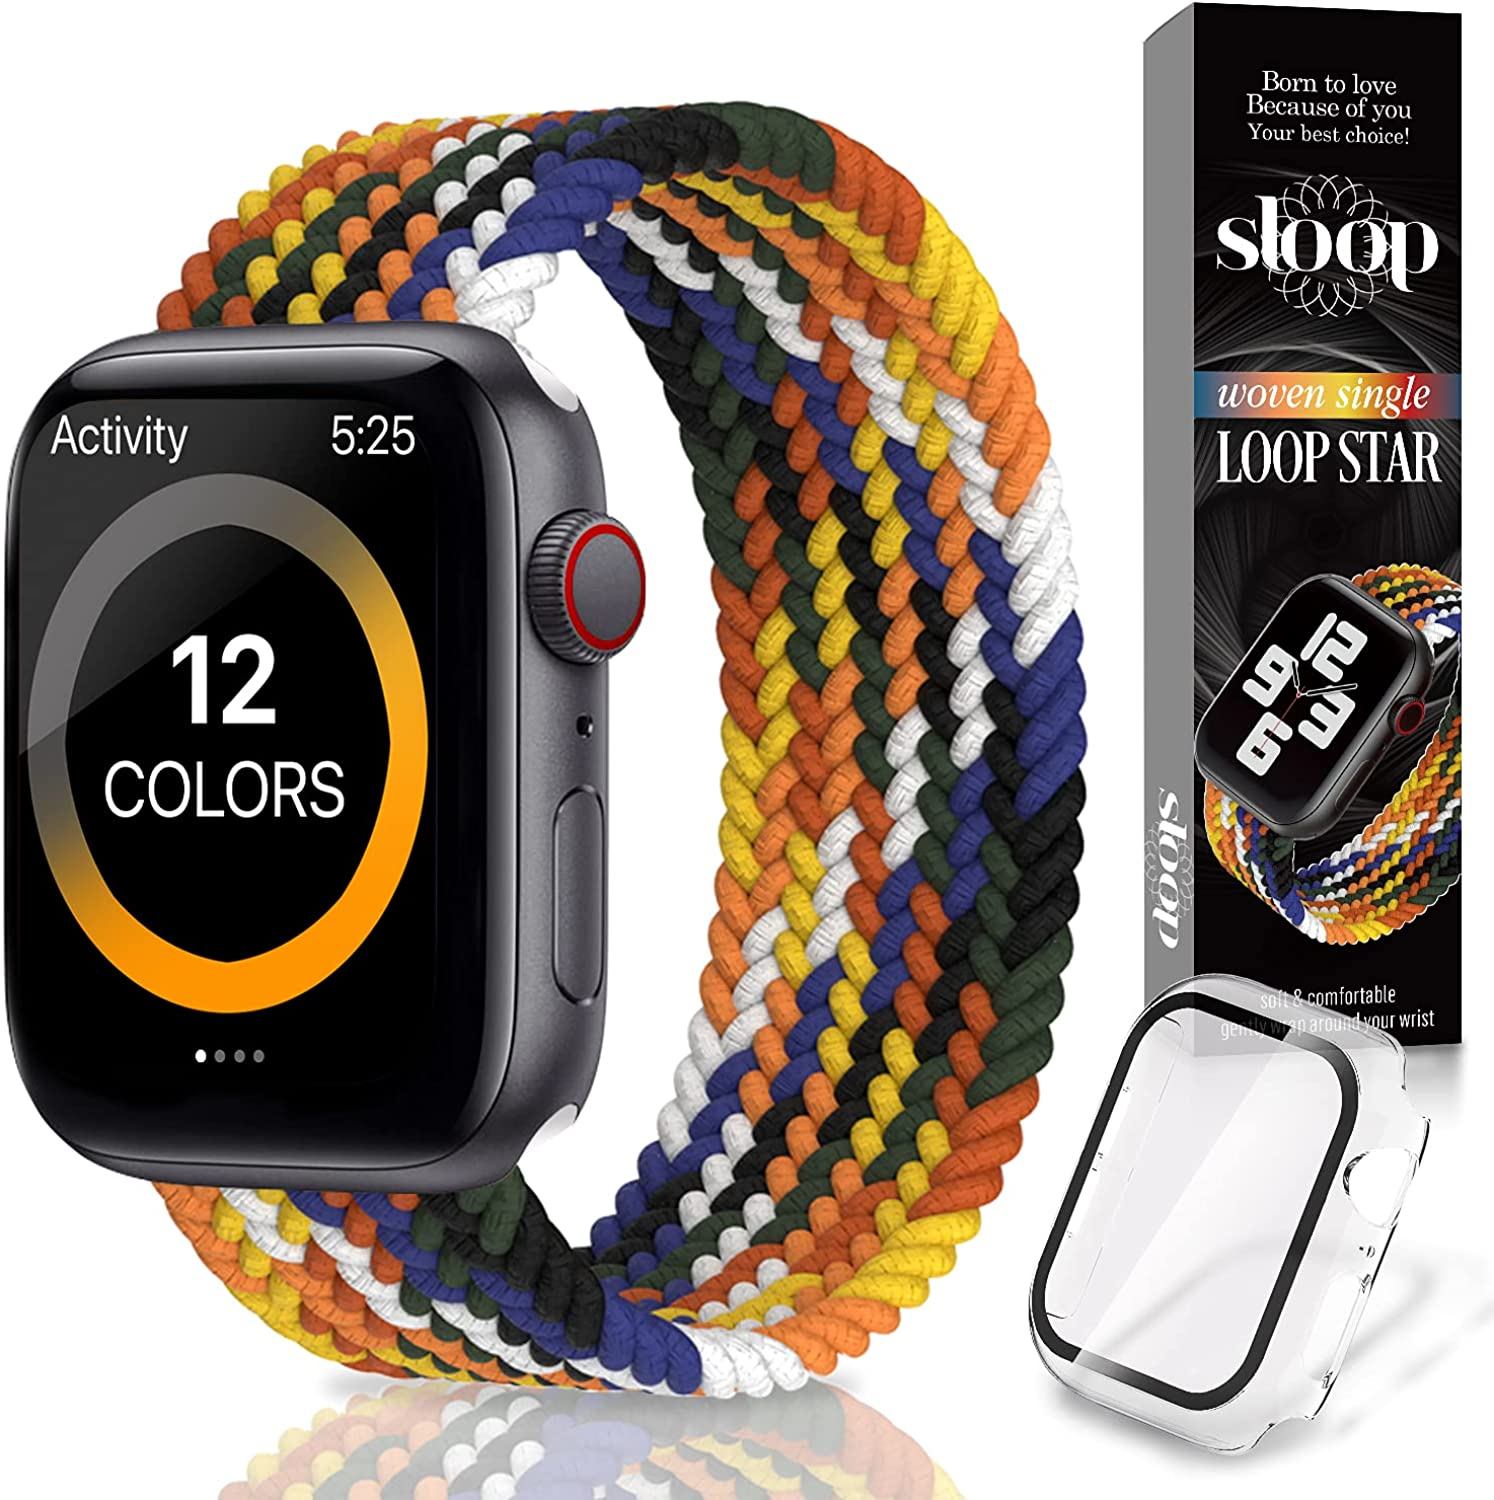 Sloop Braided Solo Loop strap, sport Band for women & man, Compatible with Apple Watch - Suitable for iWatch Series 6/5/4/3/2/1/SE Models - Durable, Suitable for Daily Use - Comfortable & Elastic Fit